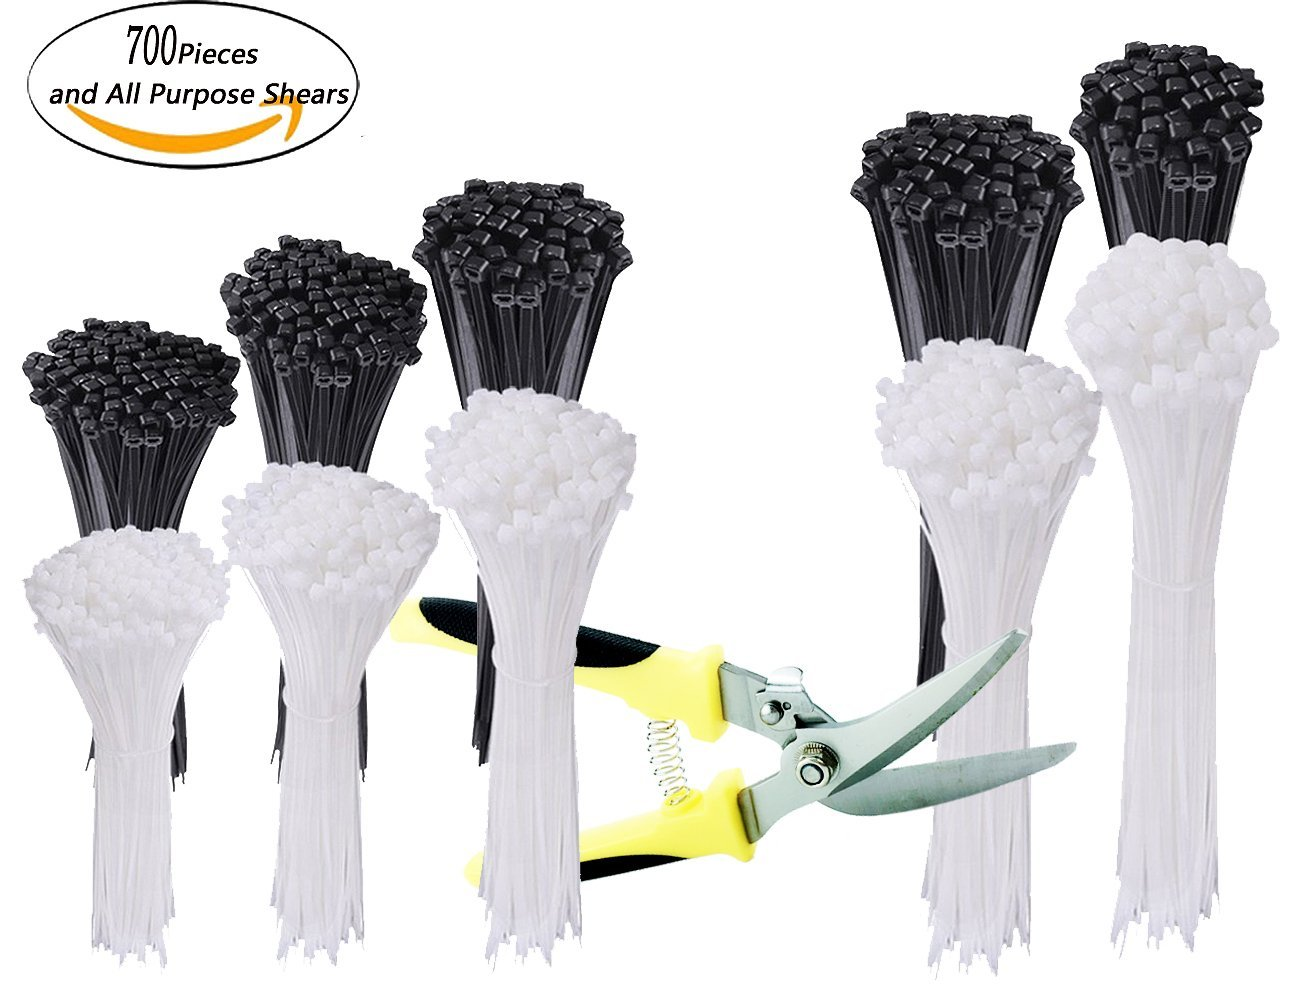 700 Pieces Zip Ties Nylon Cable Zip Ties with Self-Locking 4 6 8 10 12 Inches in Black & White and 8 Inch All Purpose Shears Perfect for Home Office Garage Workshop